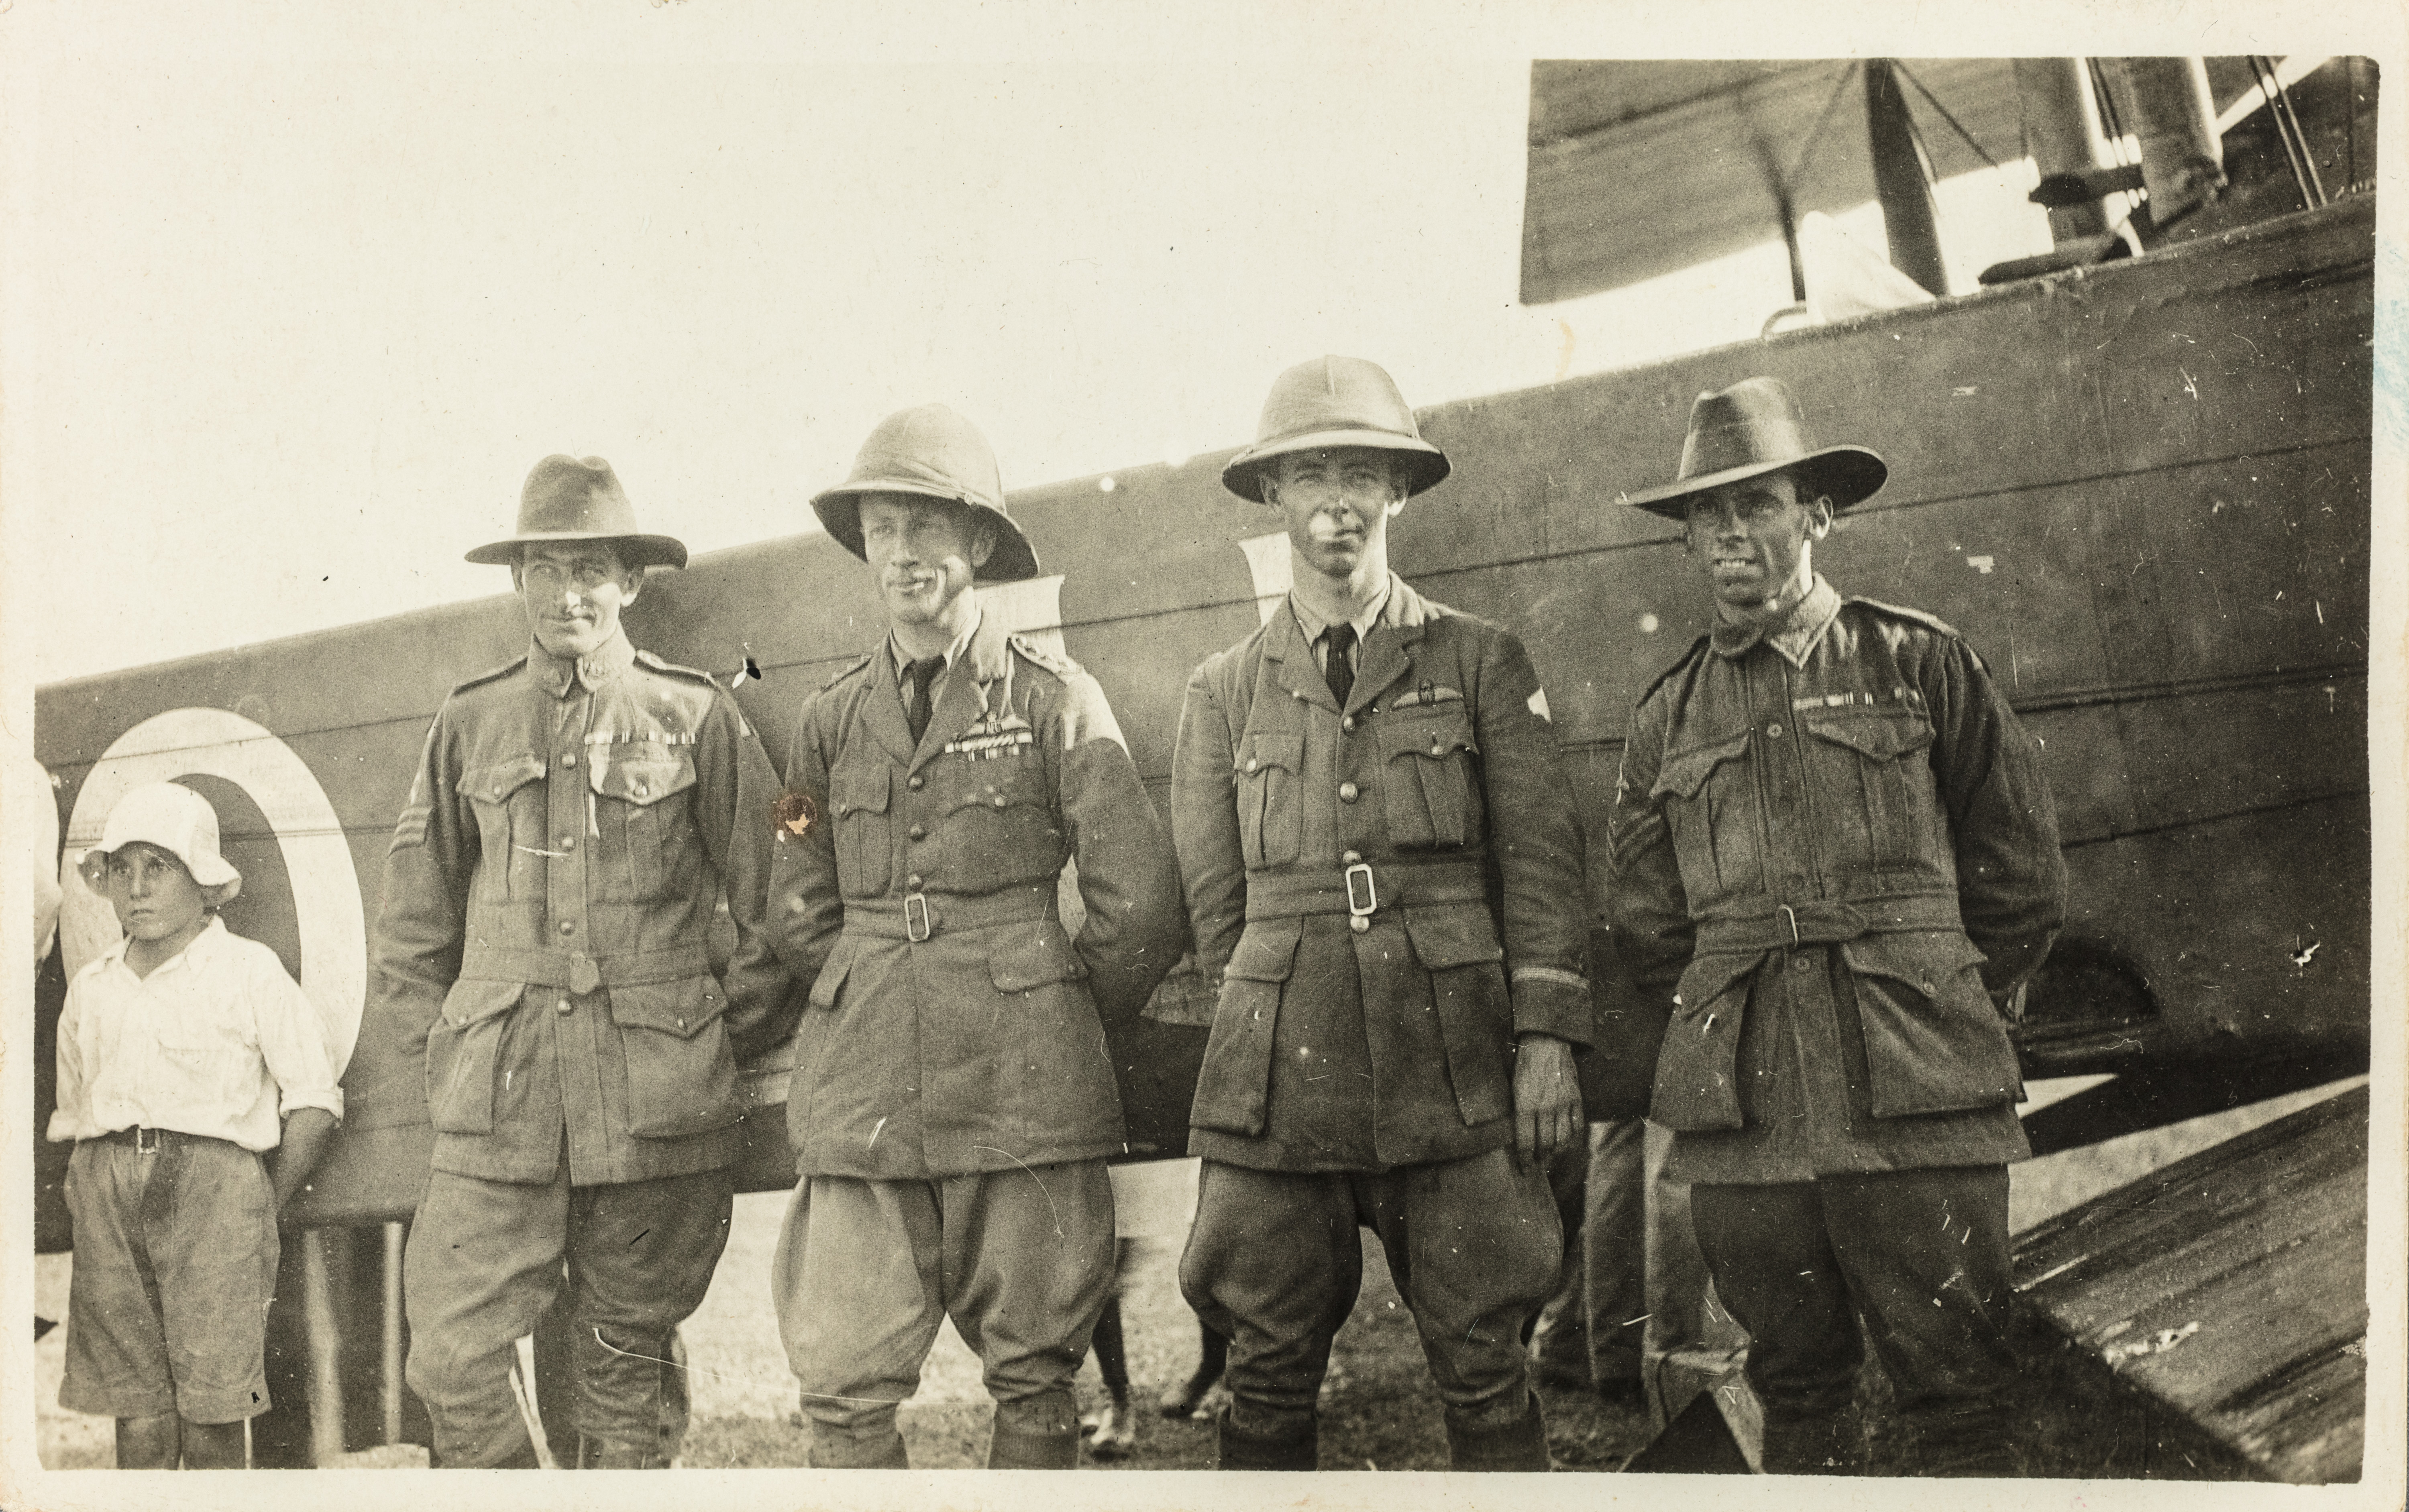 James Bennett, Ross Smith, Keith Smith and Wally Shiers standing in front of their Vickers Vimy in 1919.